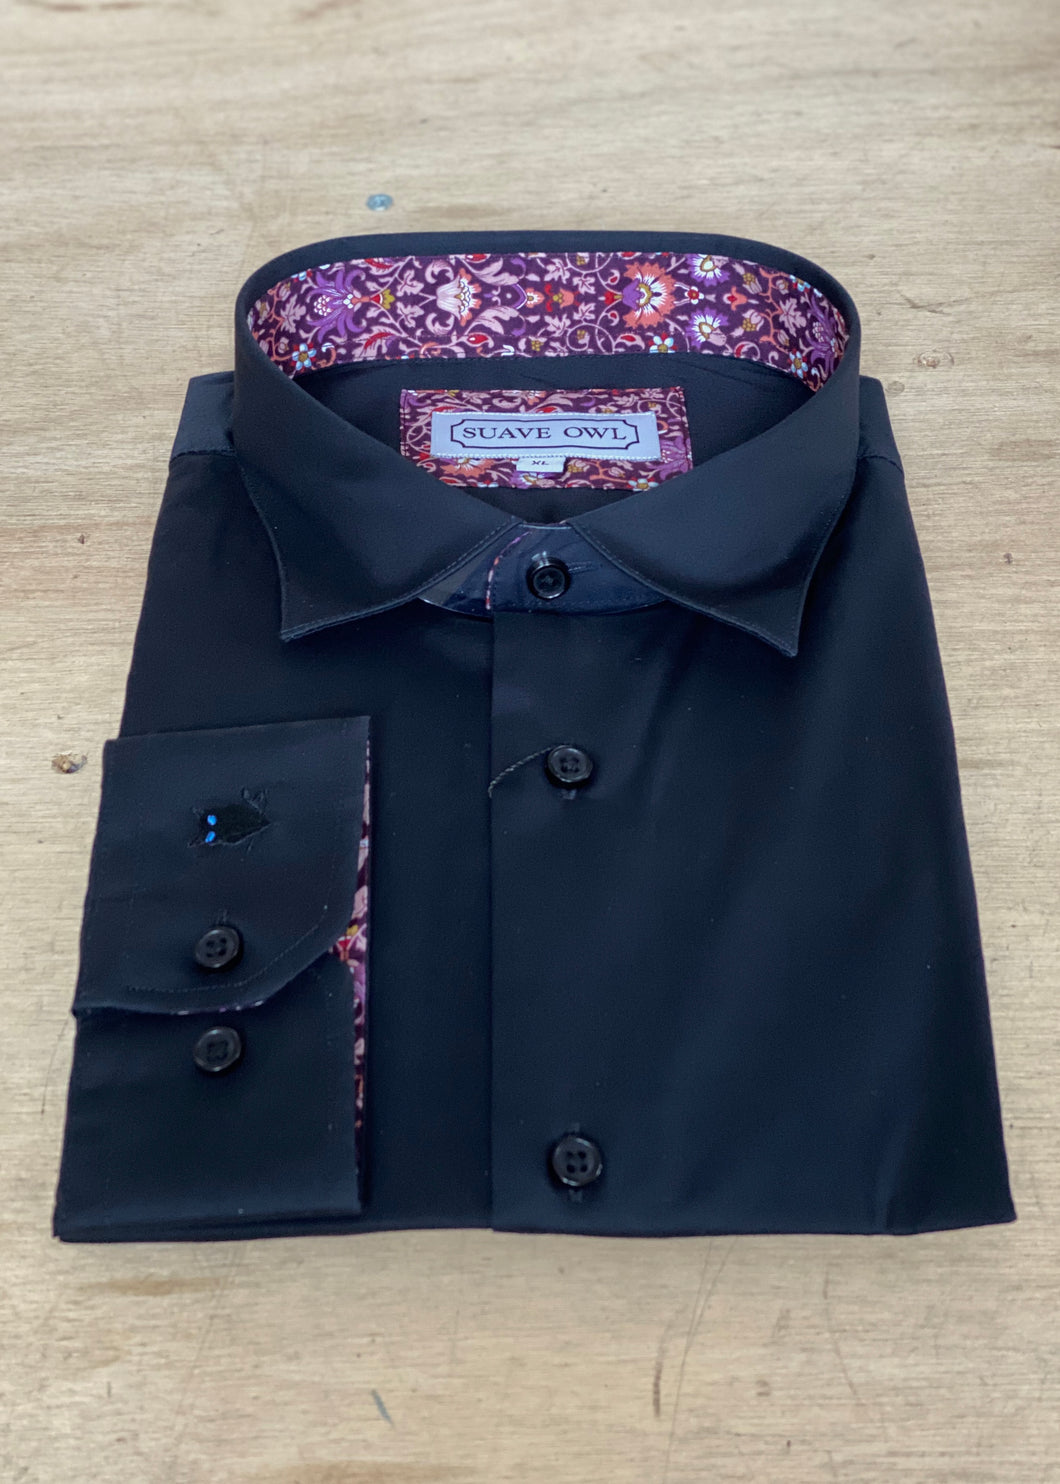 SUAVE OWL Black Shirt